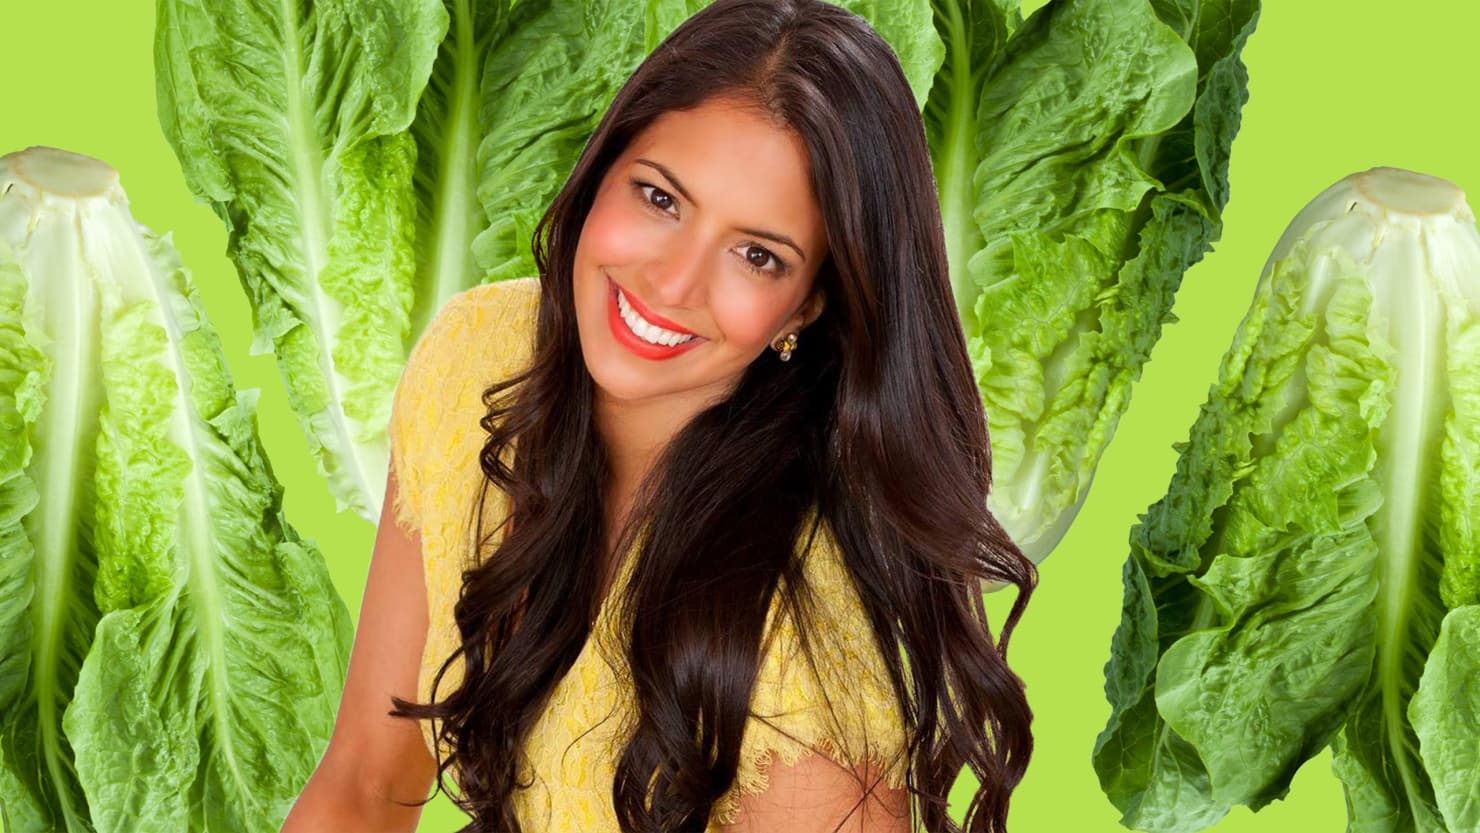 CNN Lets 'Food Babe' Spout Pseudoscience on Lettuce Outbreak